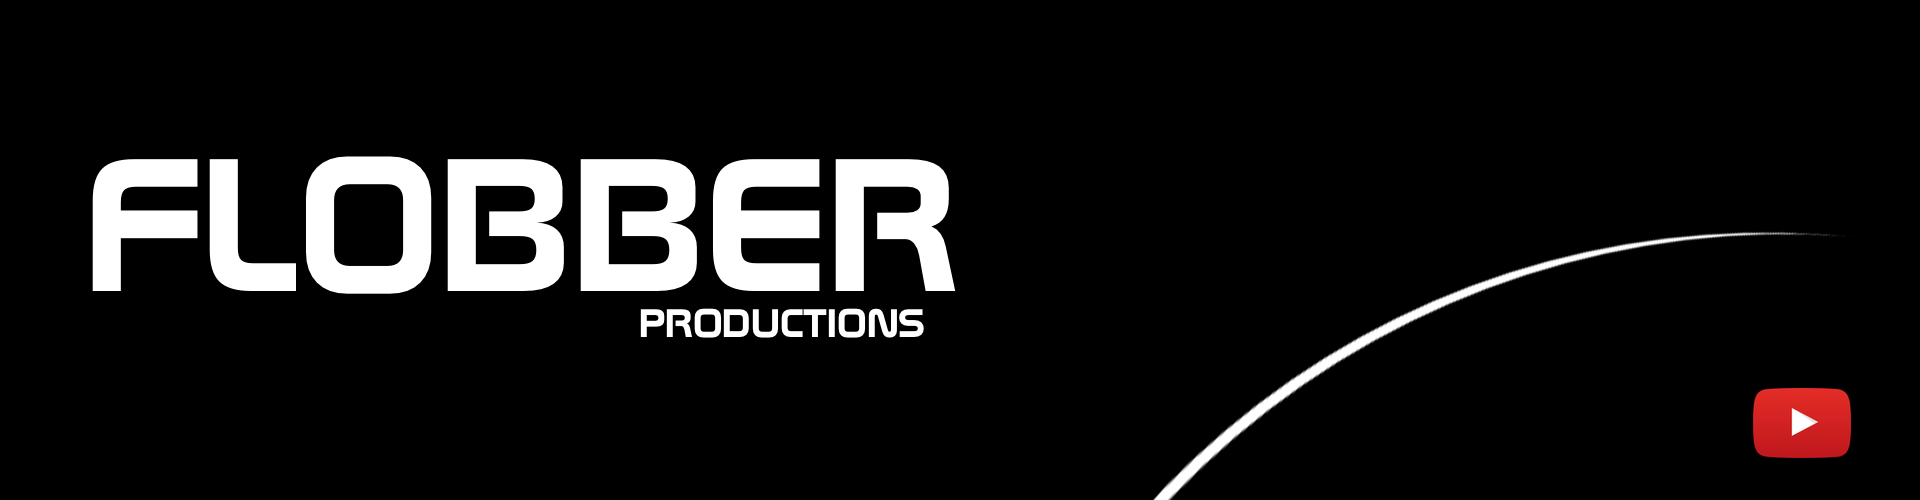 Flobber Productions banner